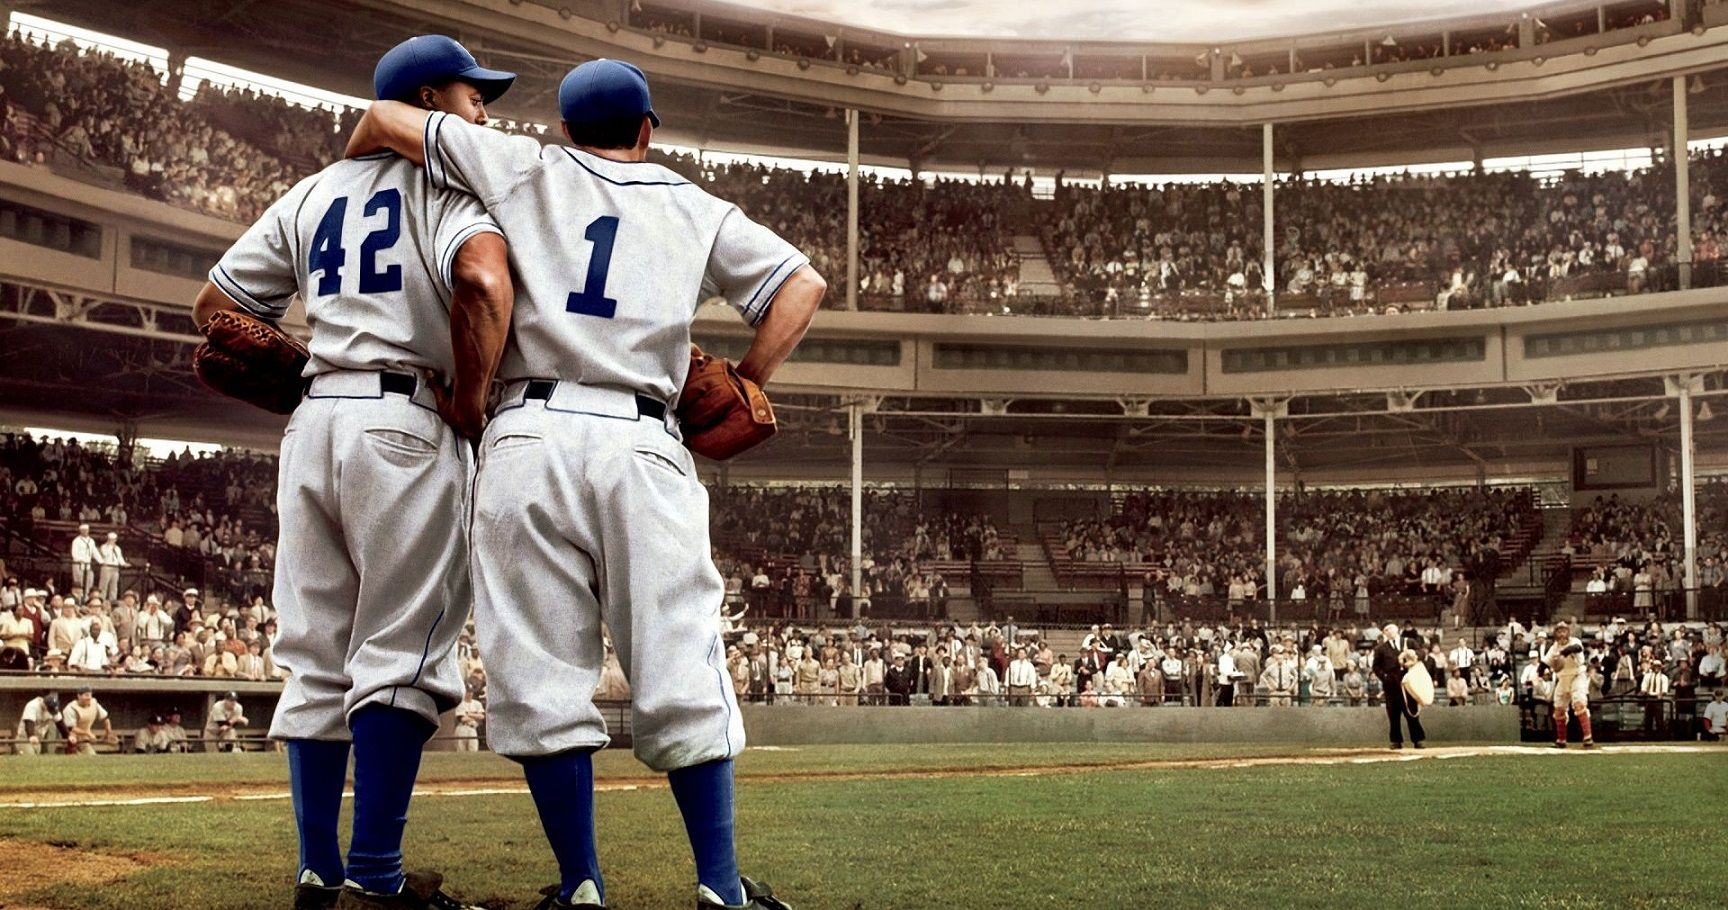 Top 10 Greatest Baseball Movies of All Time